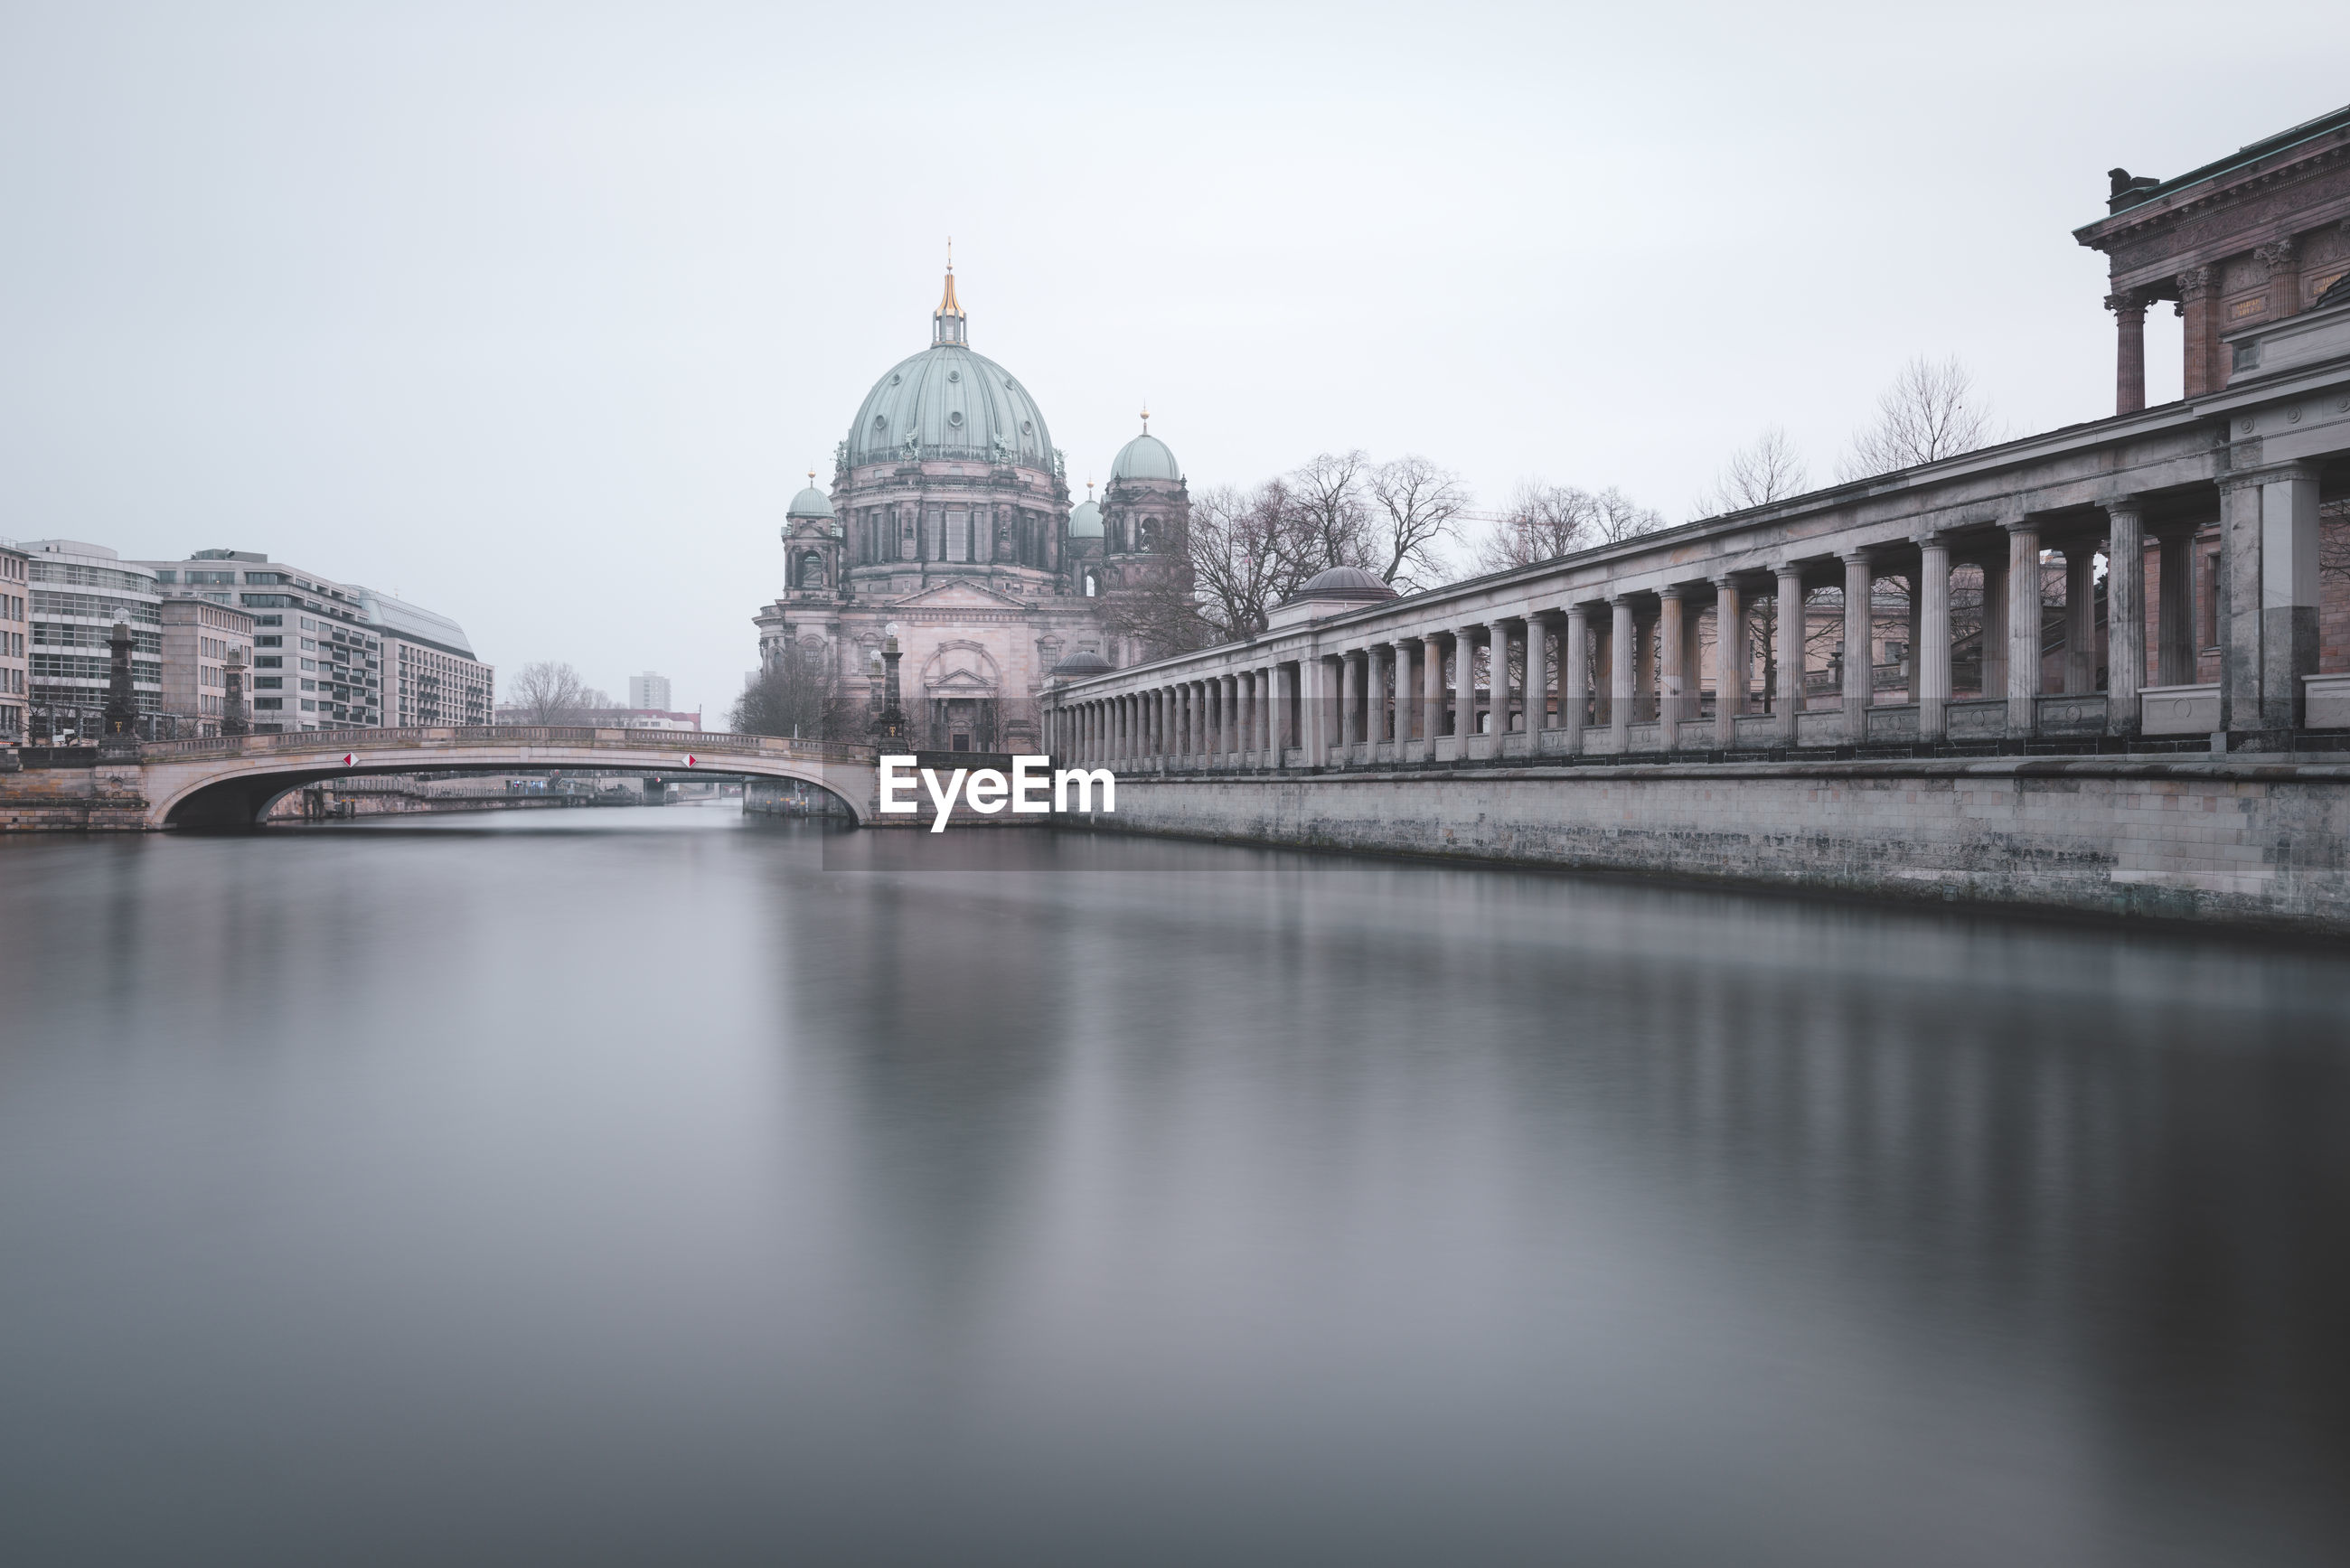 Berlin cathedral by spree river